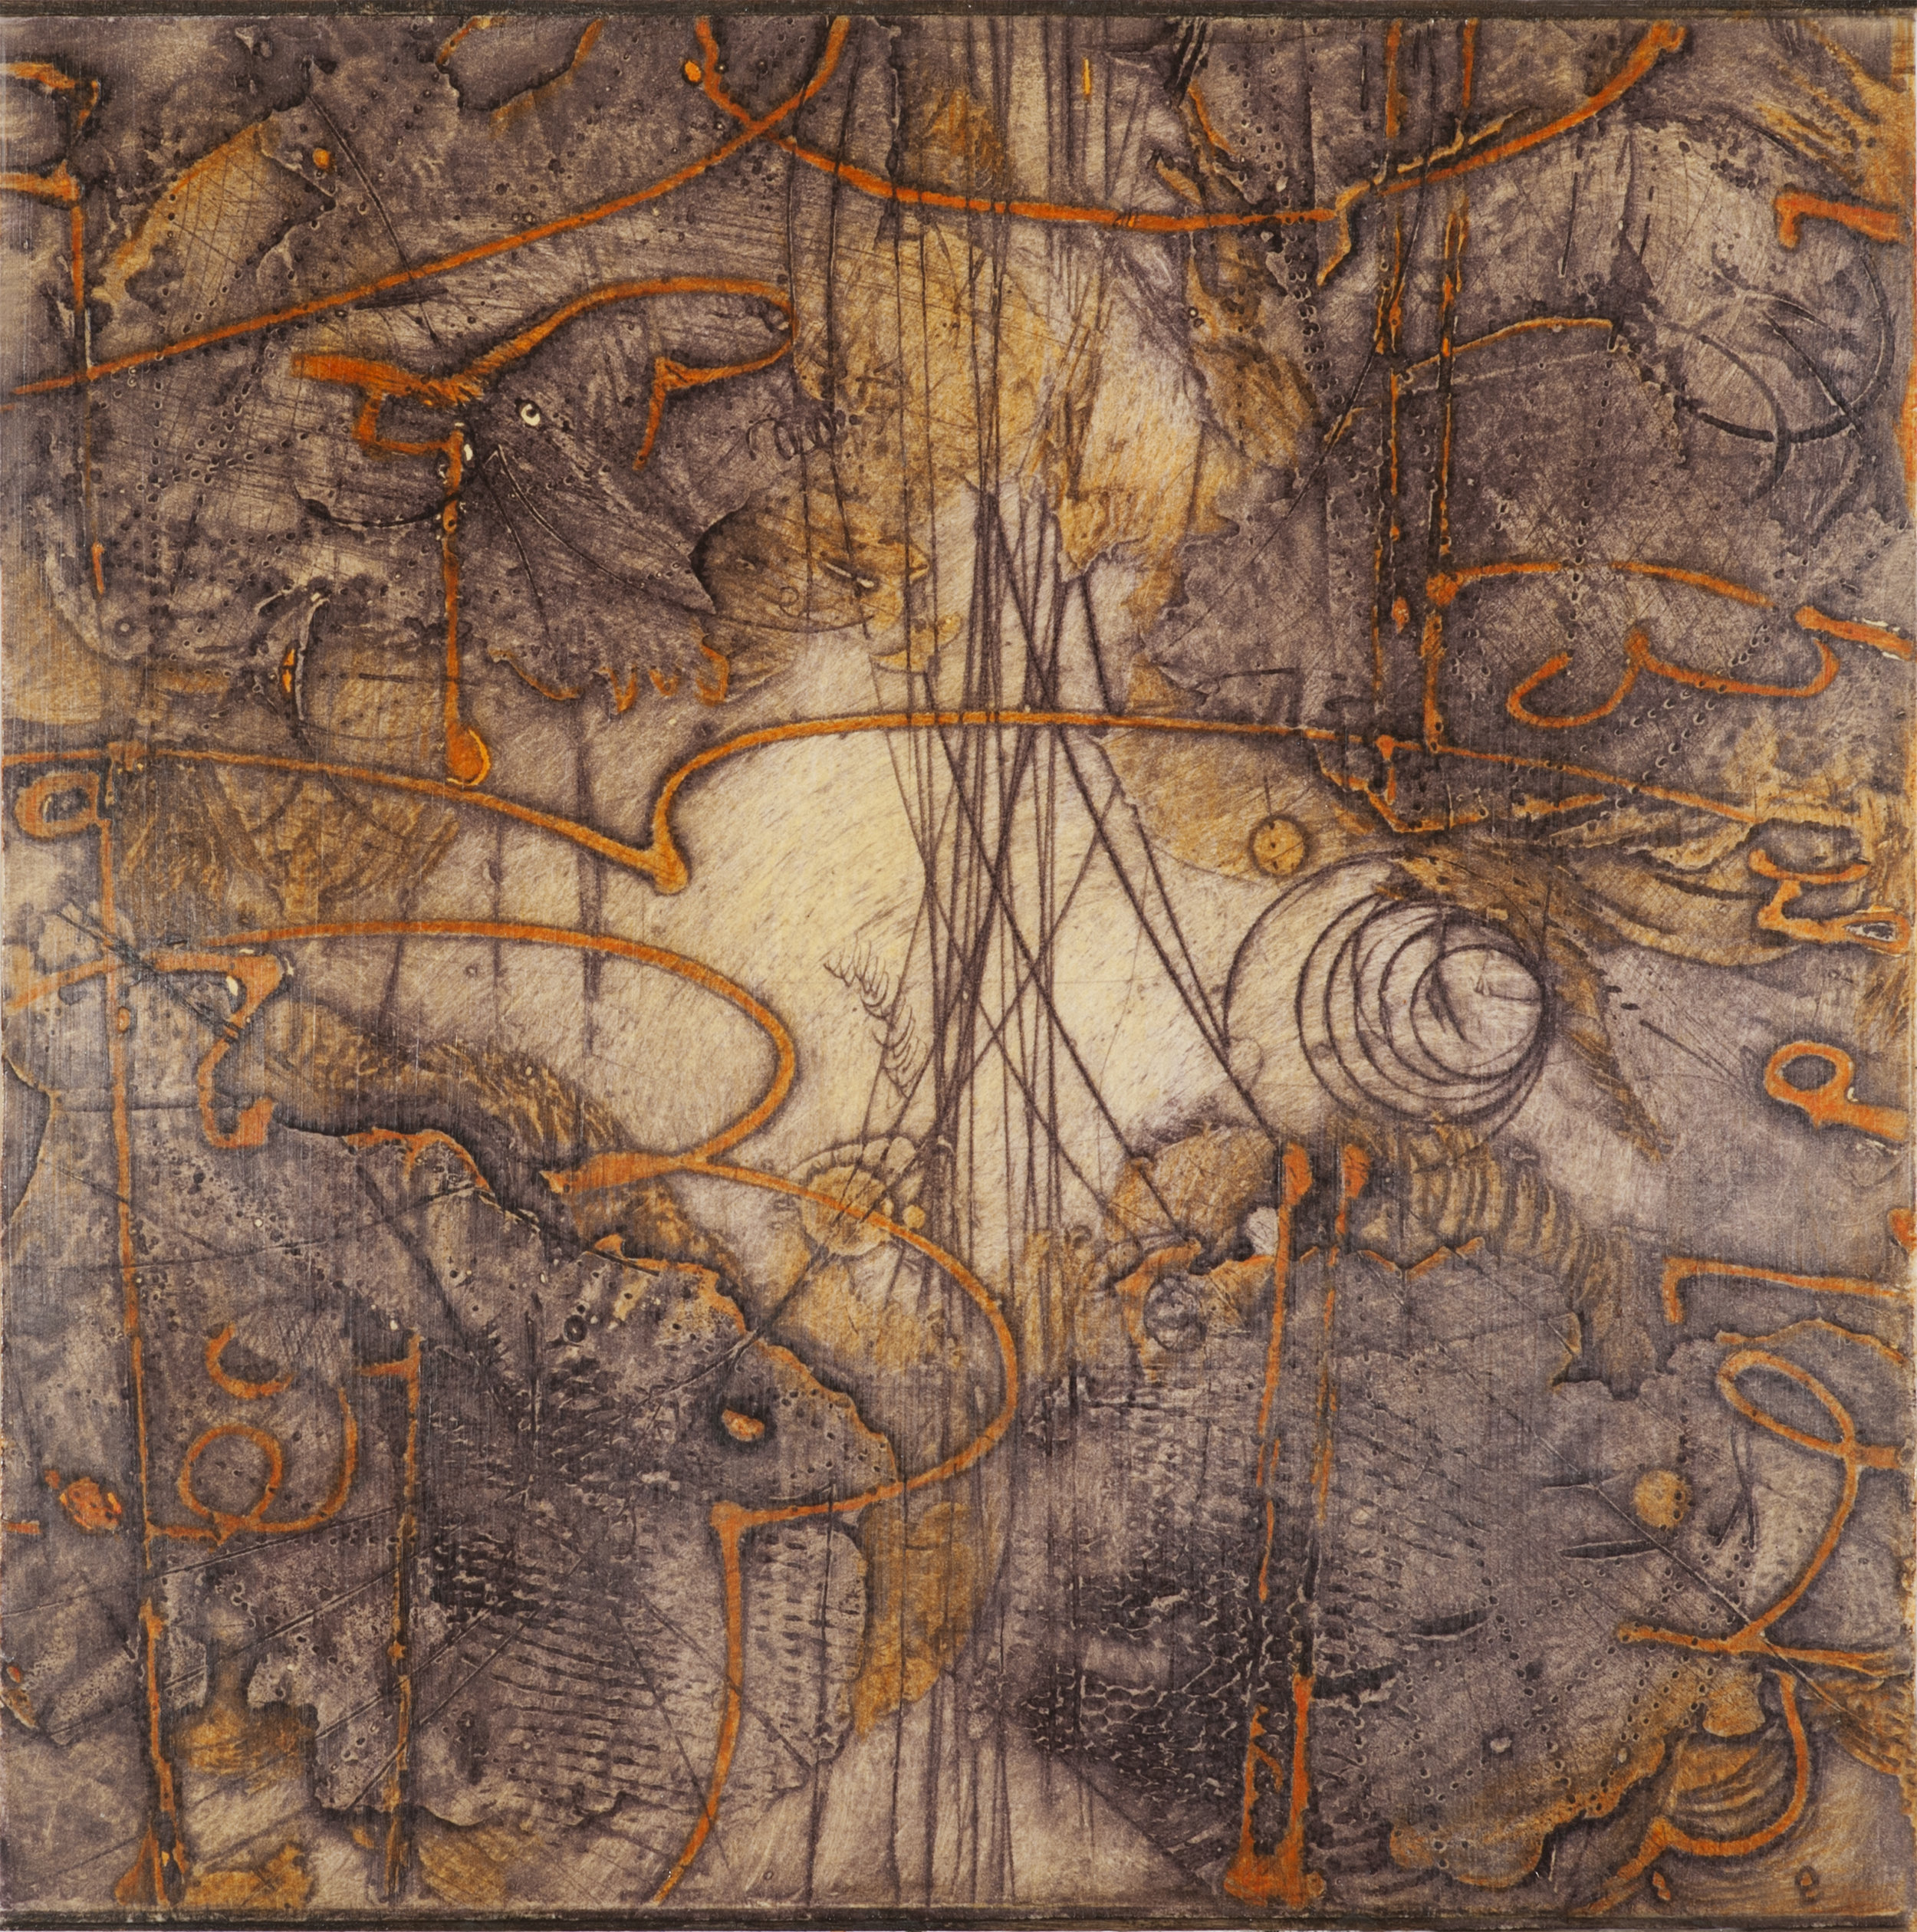 Sigma Self-Energy 9 , encaustic collagraph monoprint, Cretacolor and medium mounted on panel 10 x 10 inches, Available at   Gremillion & Co. Fine Art  , Houston